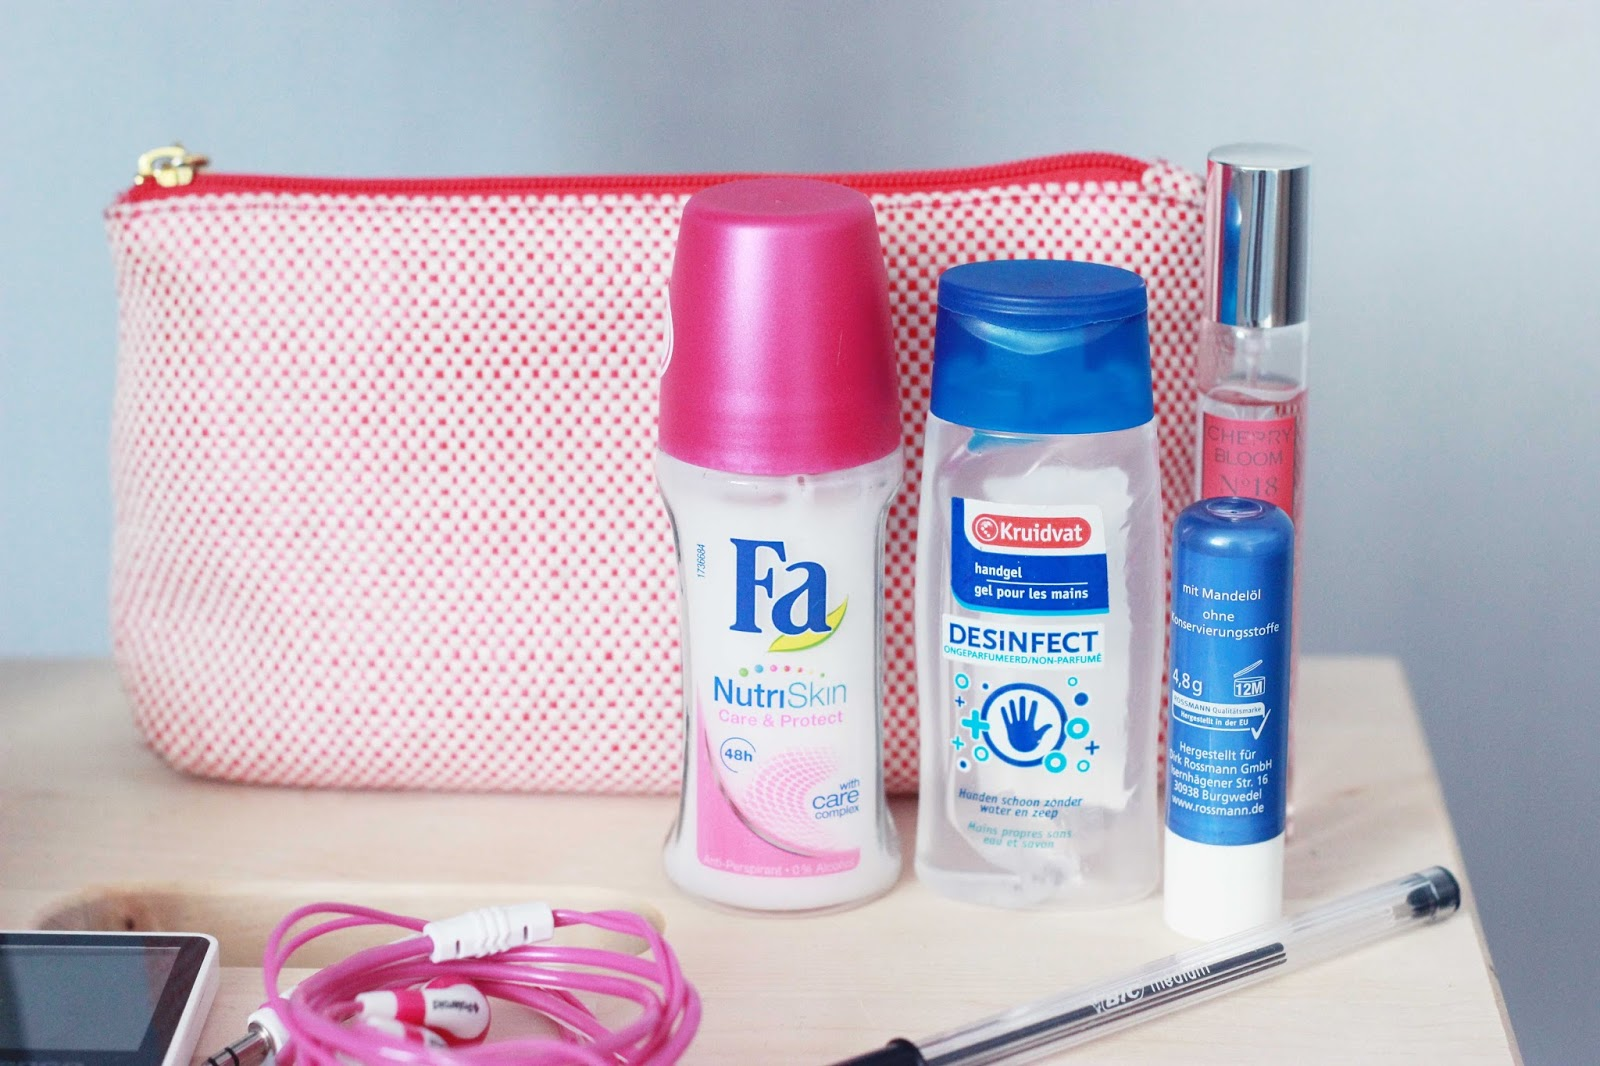 d7d8e308adc Nieuwe Invito tas uit de sale + what's in my bag? - The Budget Life ...